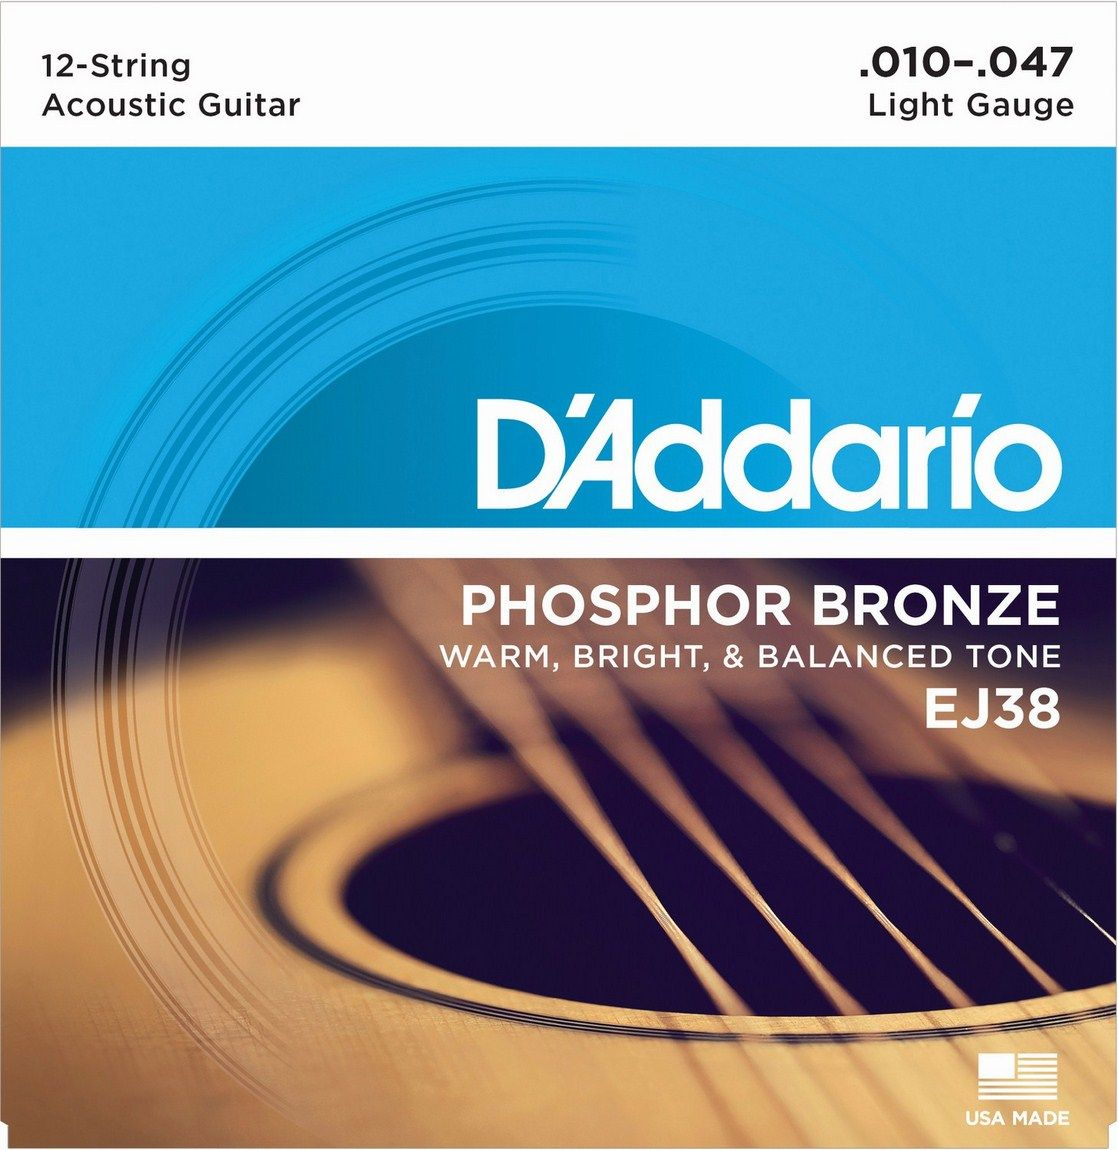 D'Addario EJ Phosphor Bronze 12 String Acoustic Guitar Strings EJ38 Light 10-47